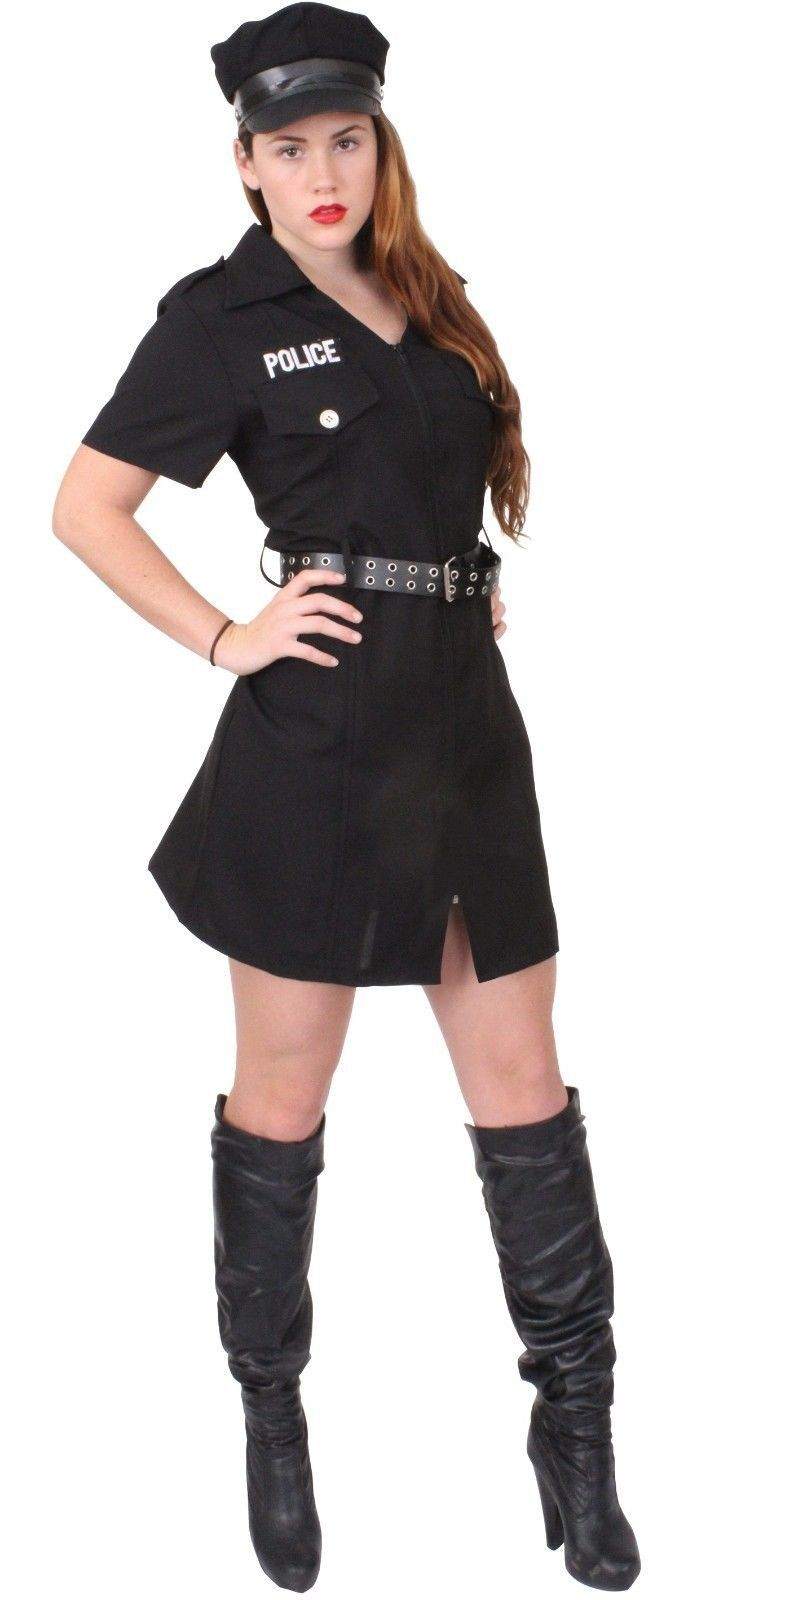 Womens Police Costume - Girls Officer Outfit - Halloween, Dress Up ...